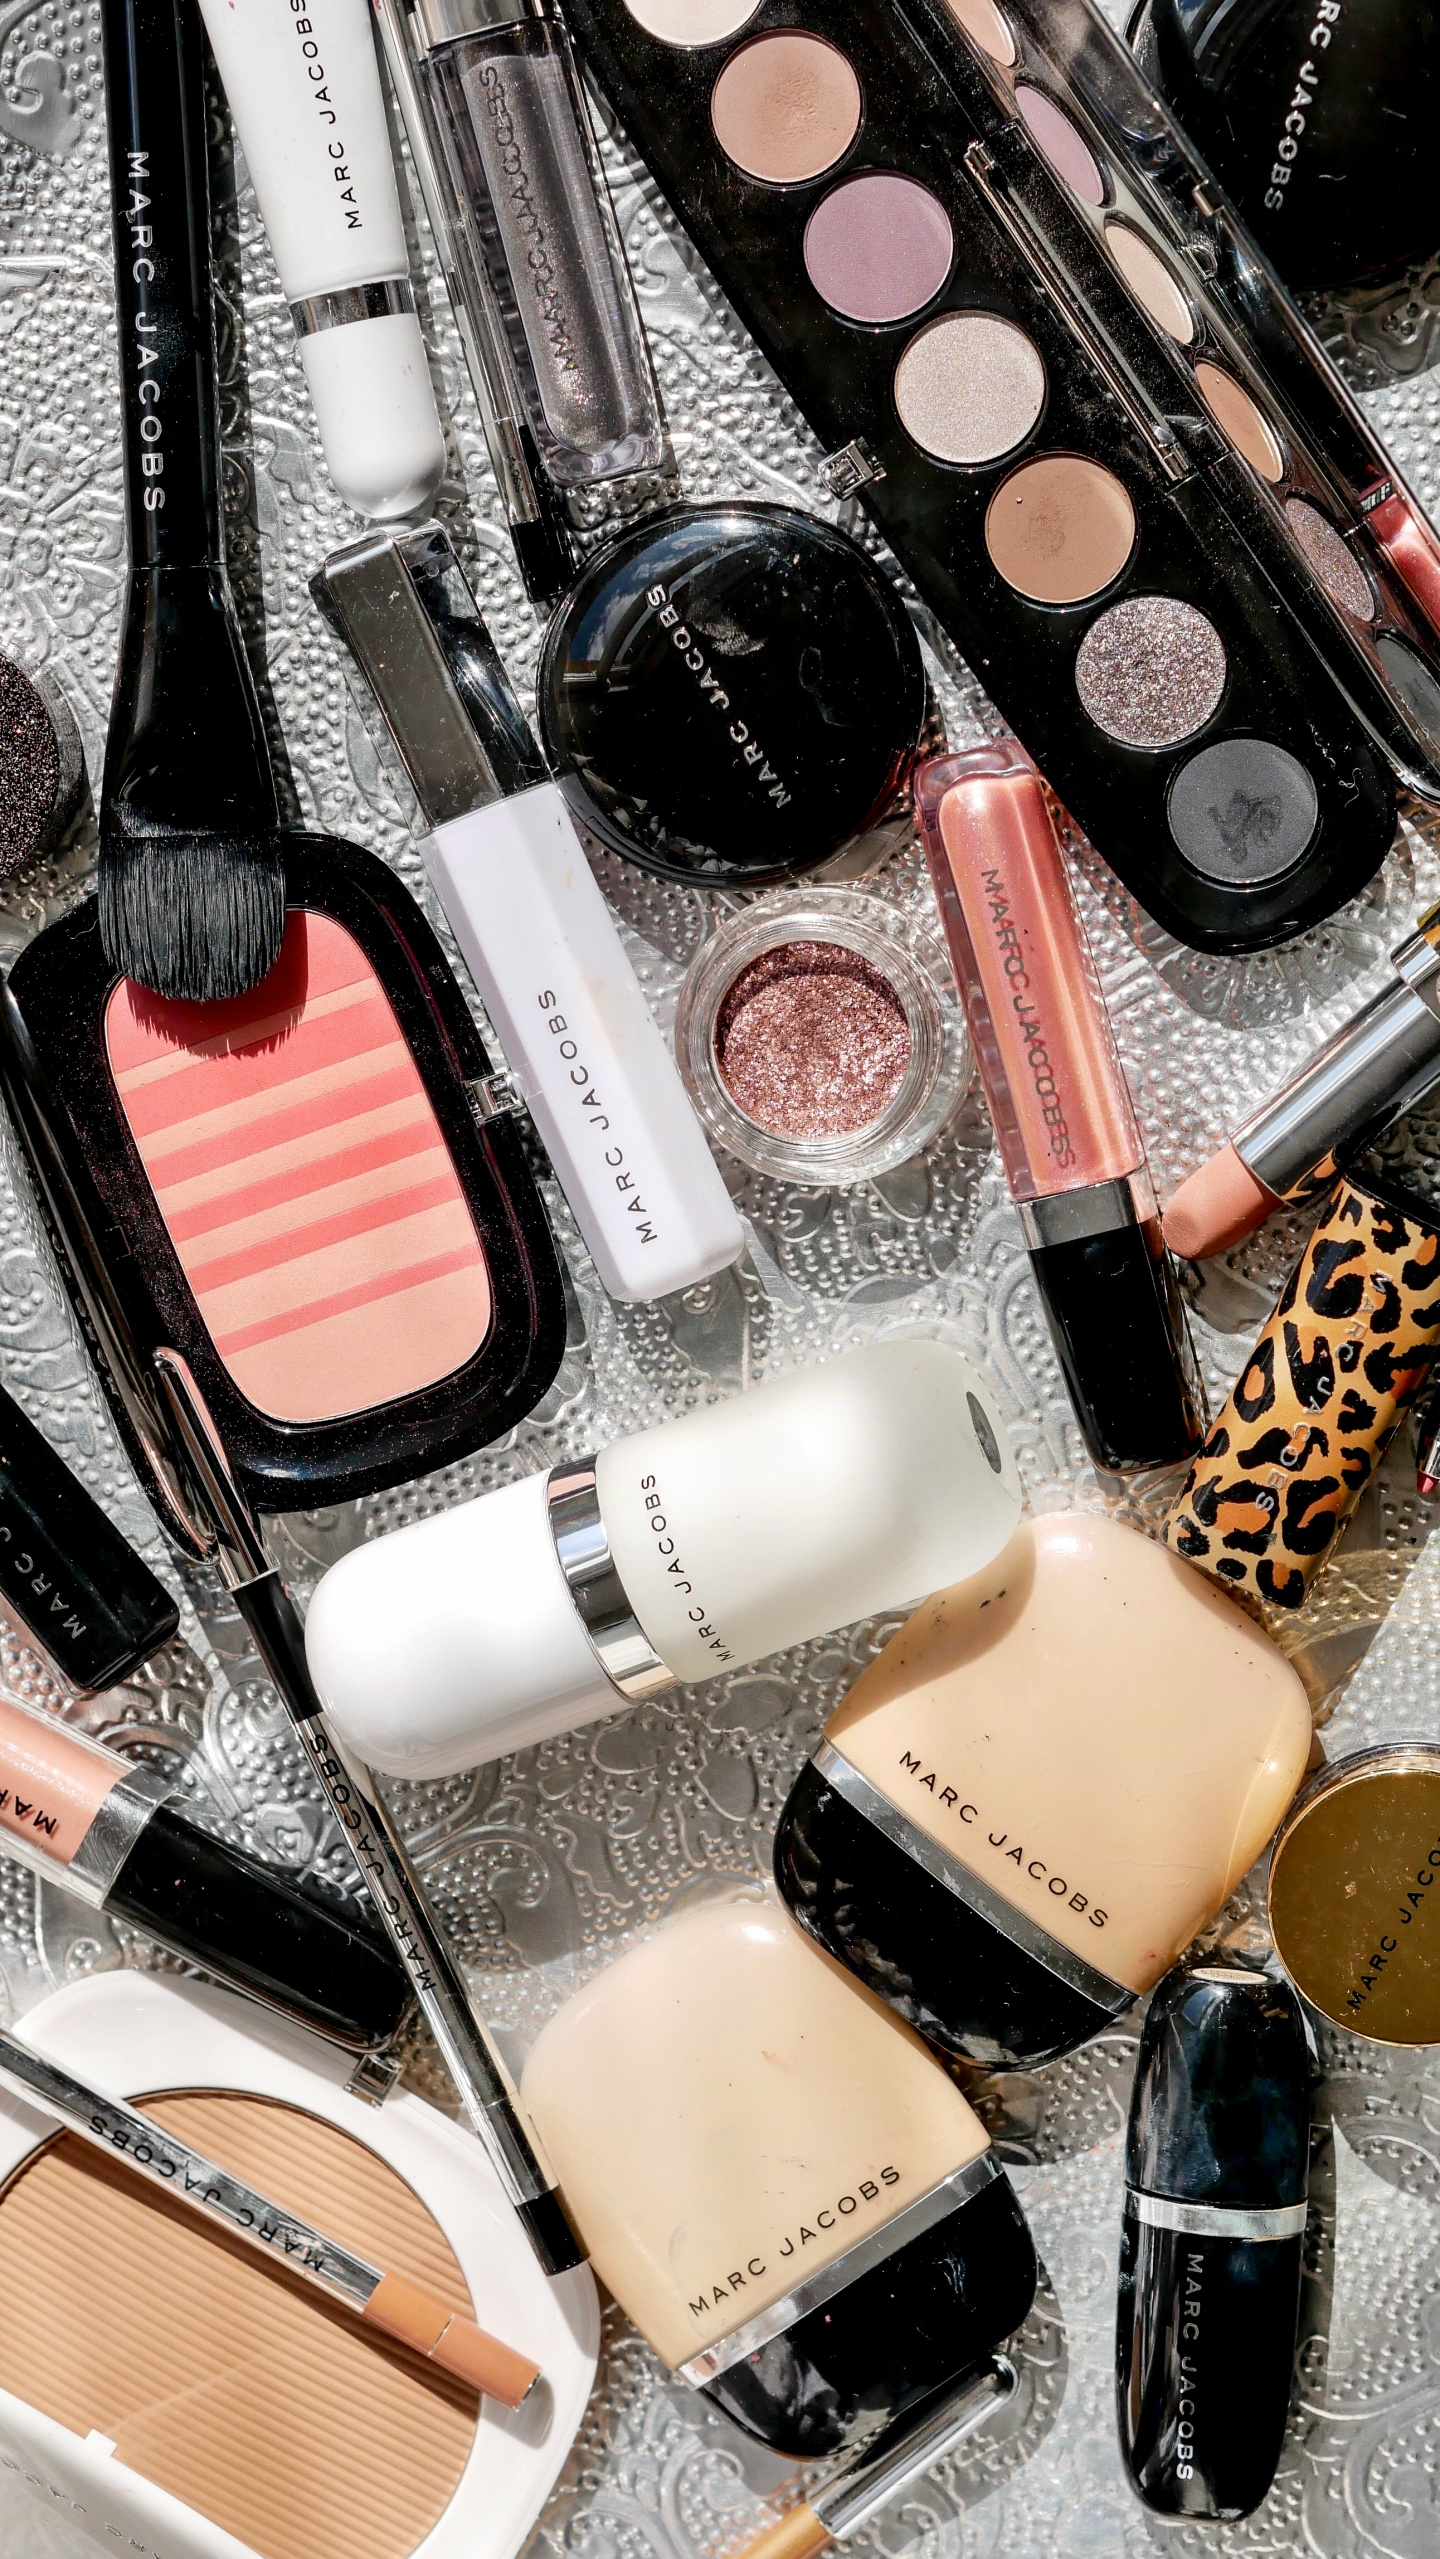 marc jacobs beauty, marc jacobs, makeup, cat eye , harvey nichols, marc jacobs mascara, marc jacobs foundation, marc jacobs